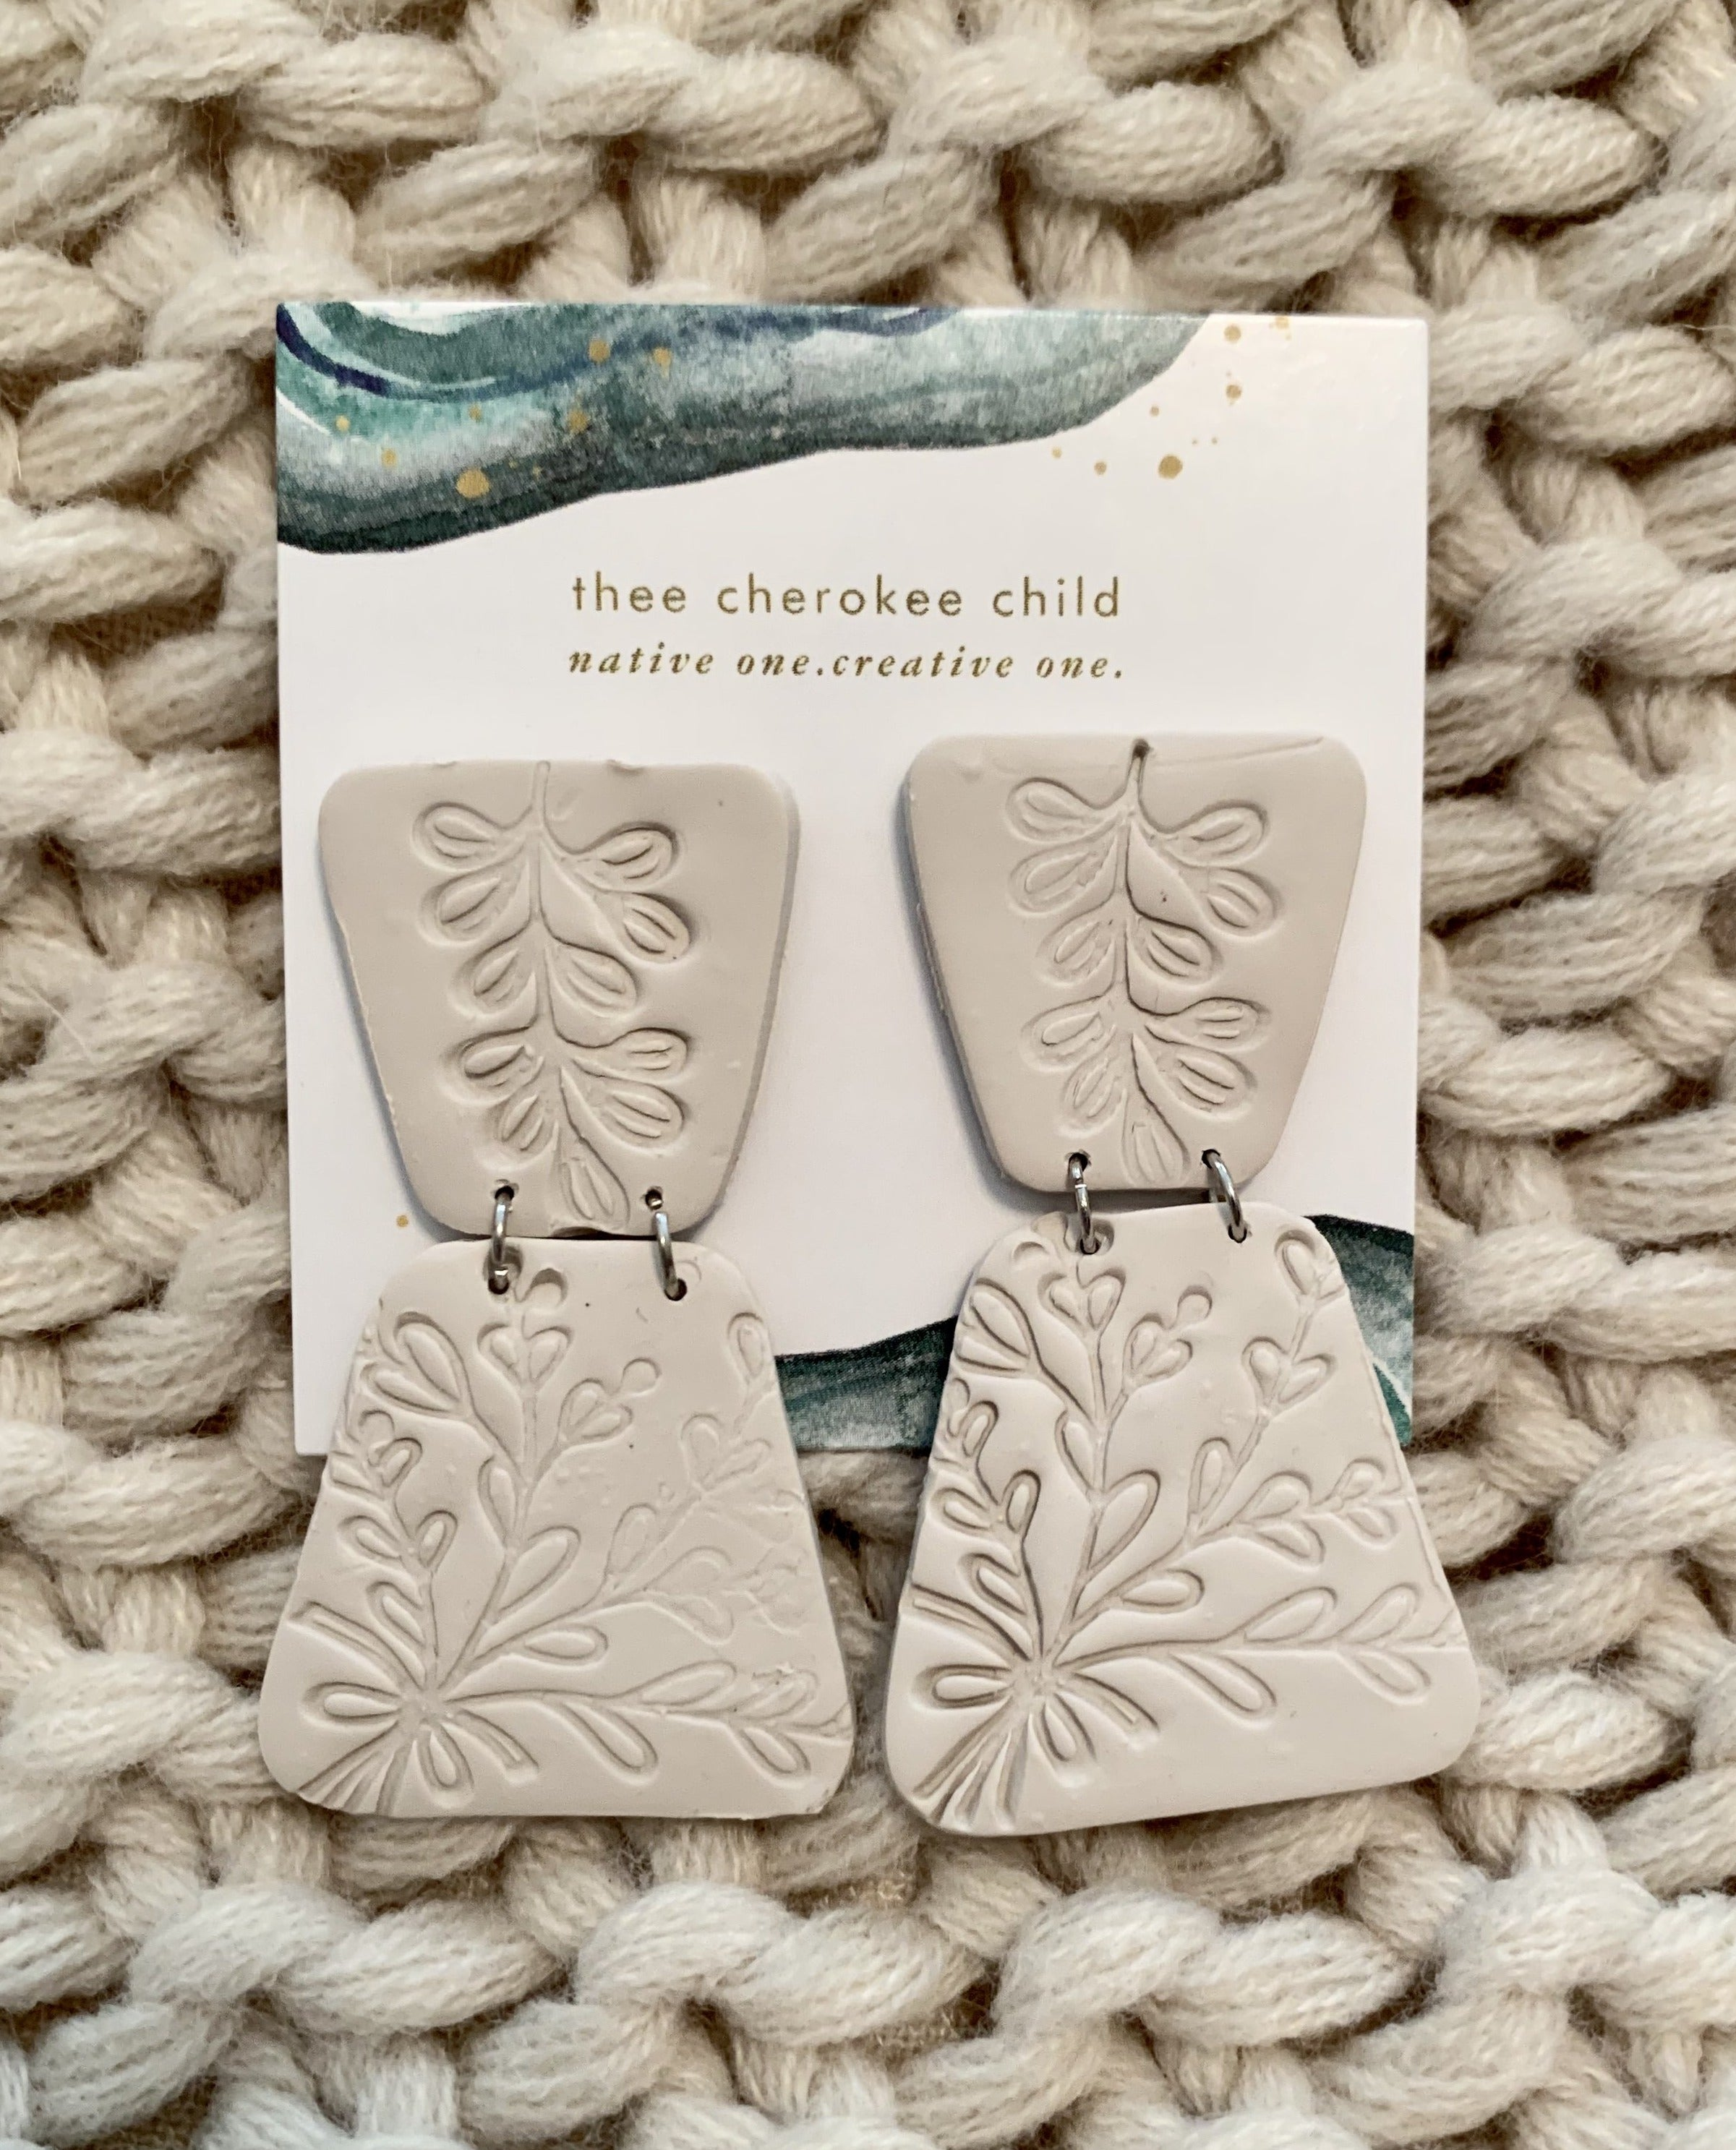 Handmade Clay Floral Earrings by Cherish Collective